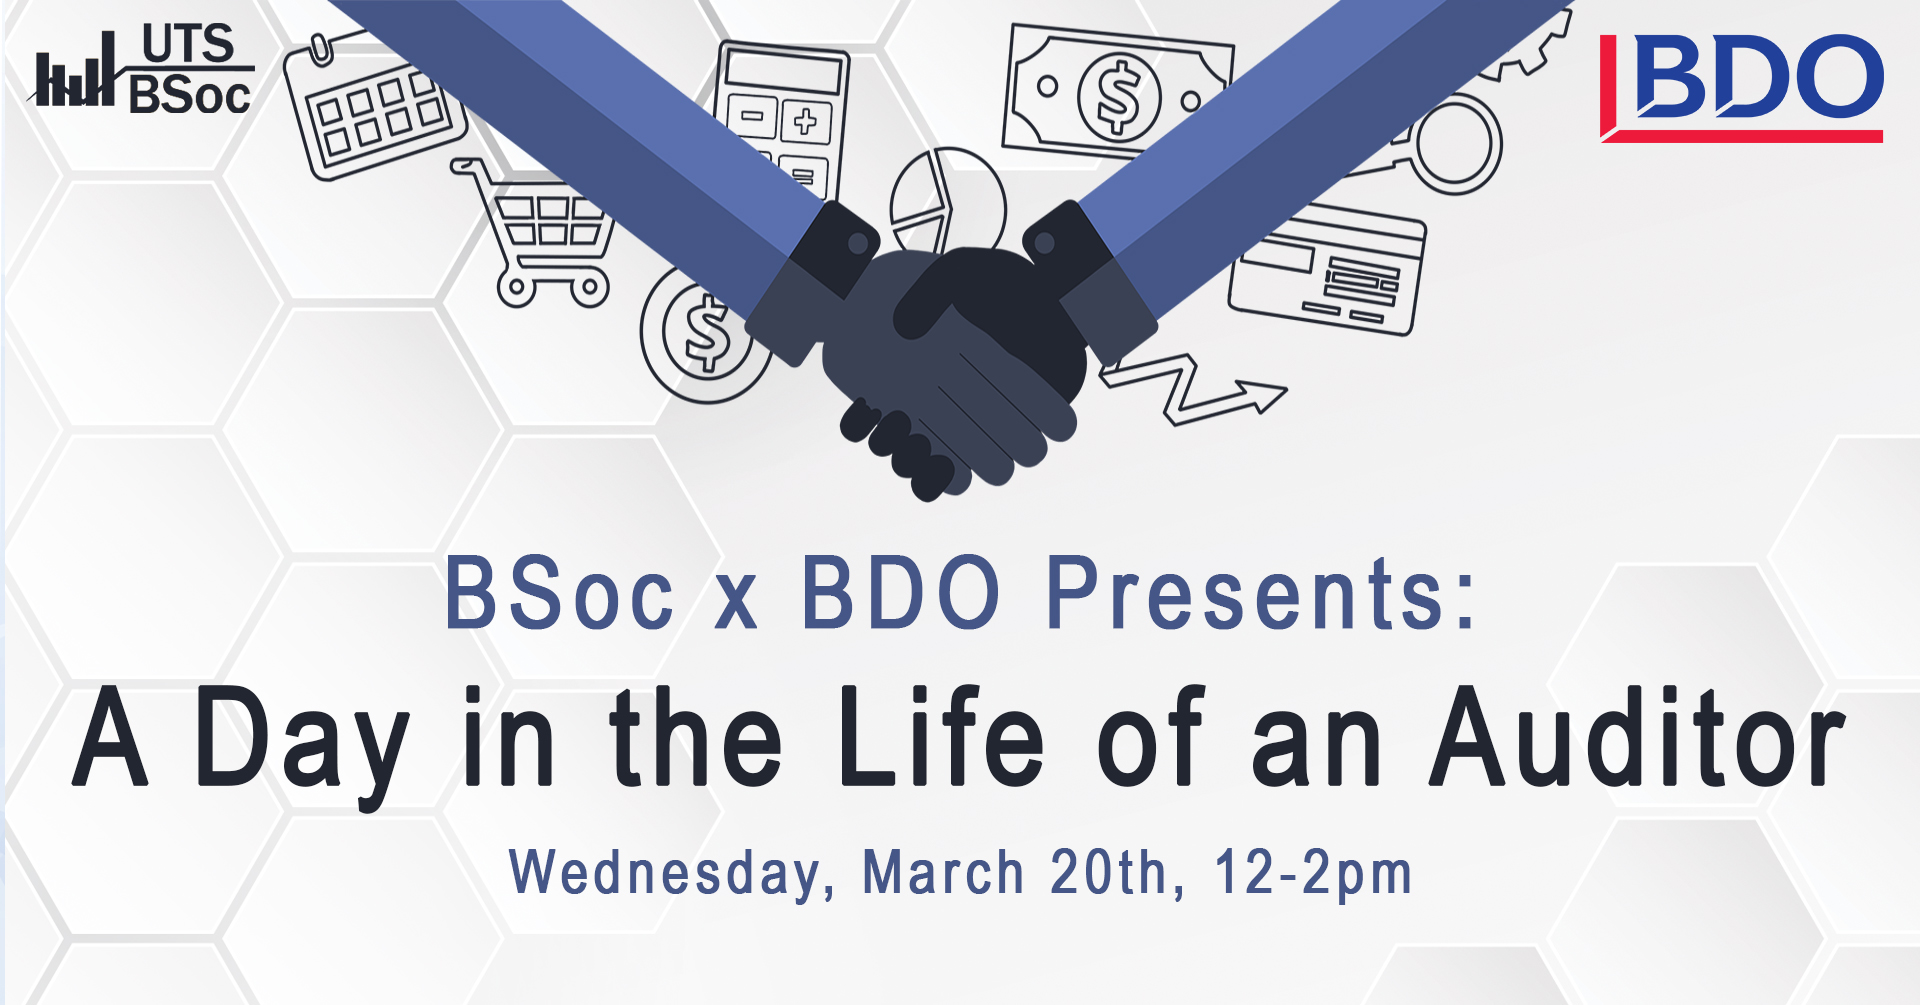 BSoc X BDO Presents: A Day in the Life of an Auditor